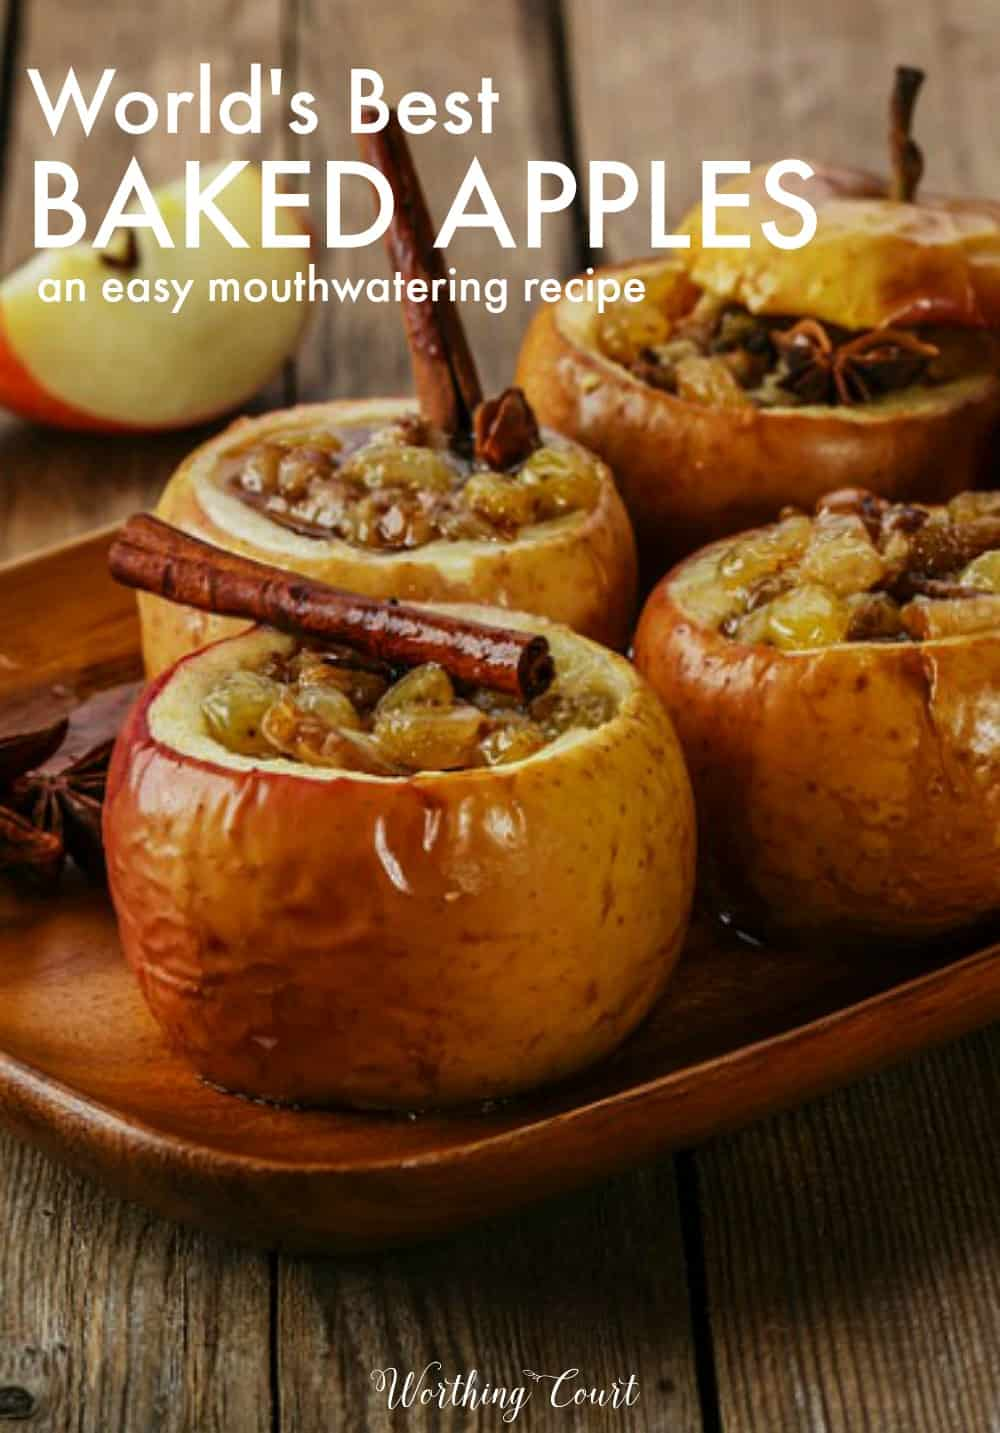 The world's best baked apples recipe